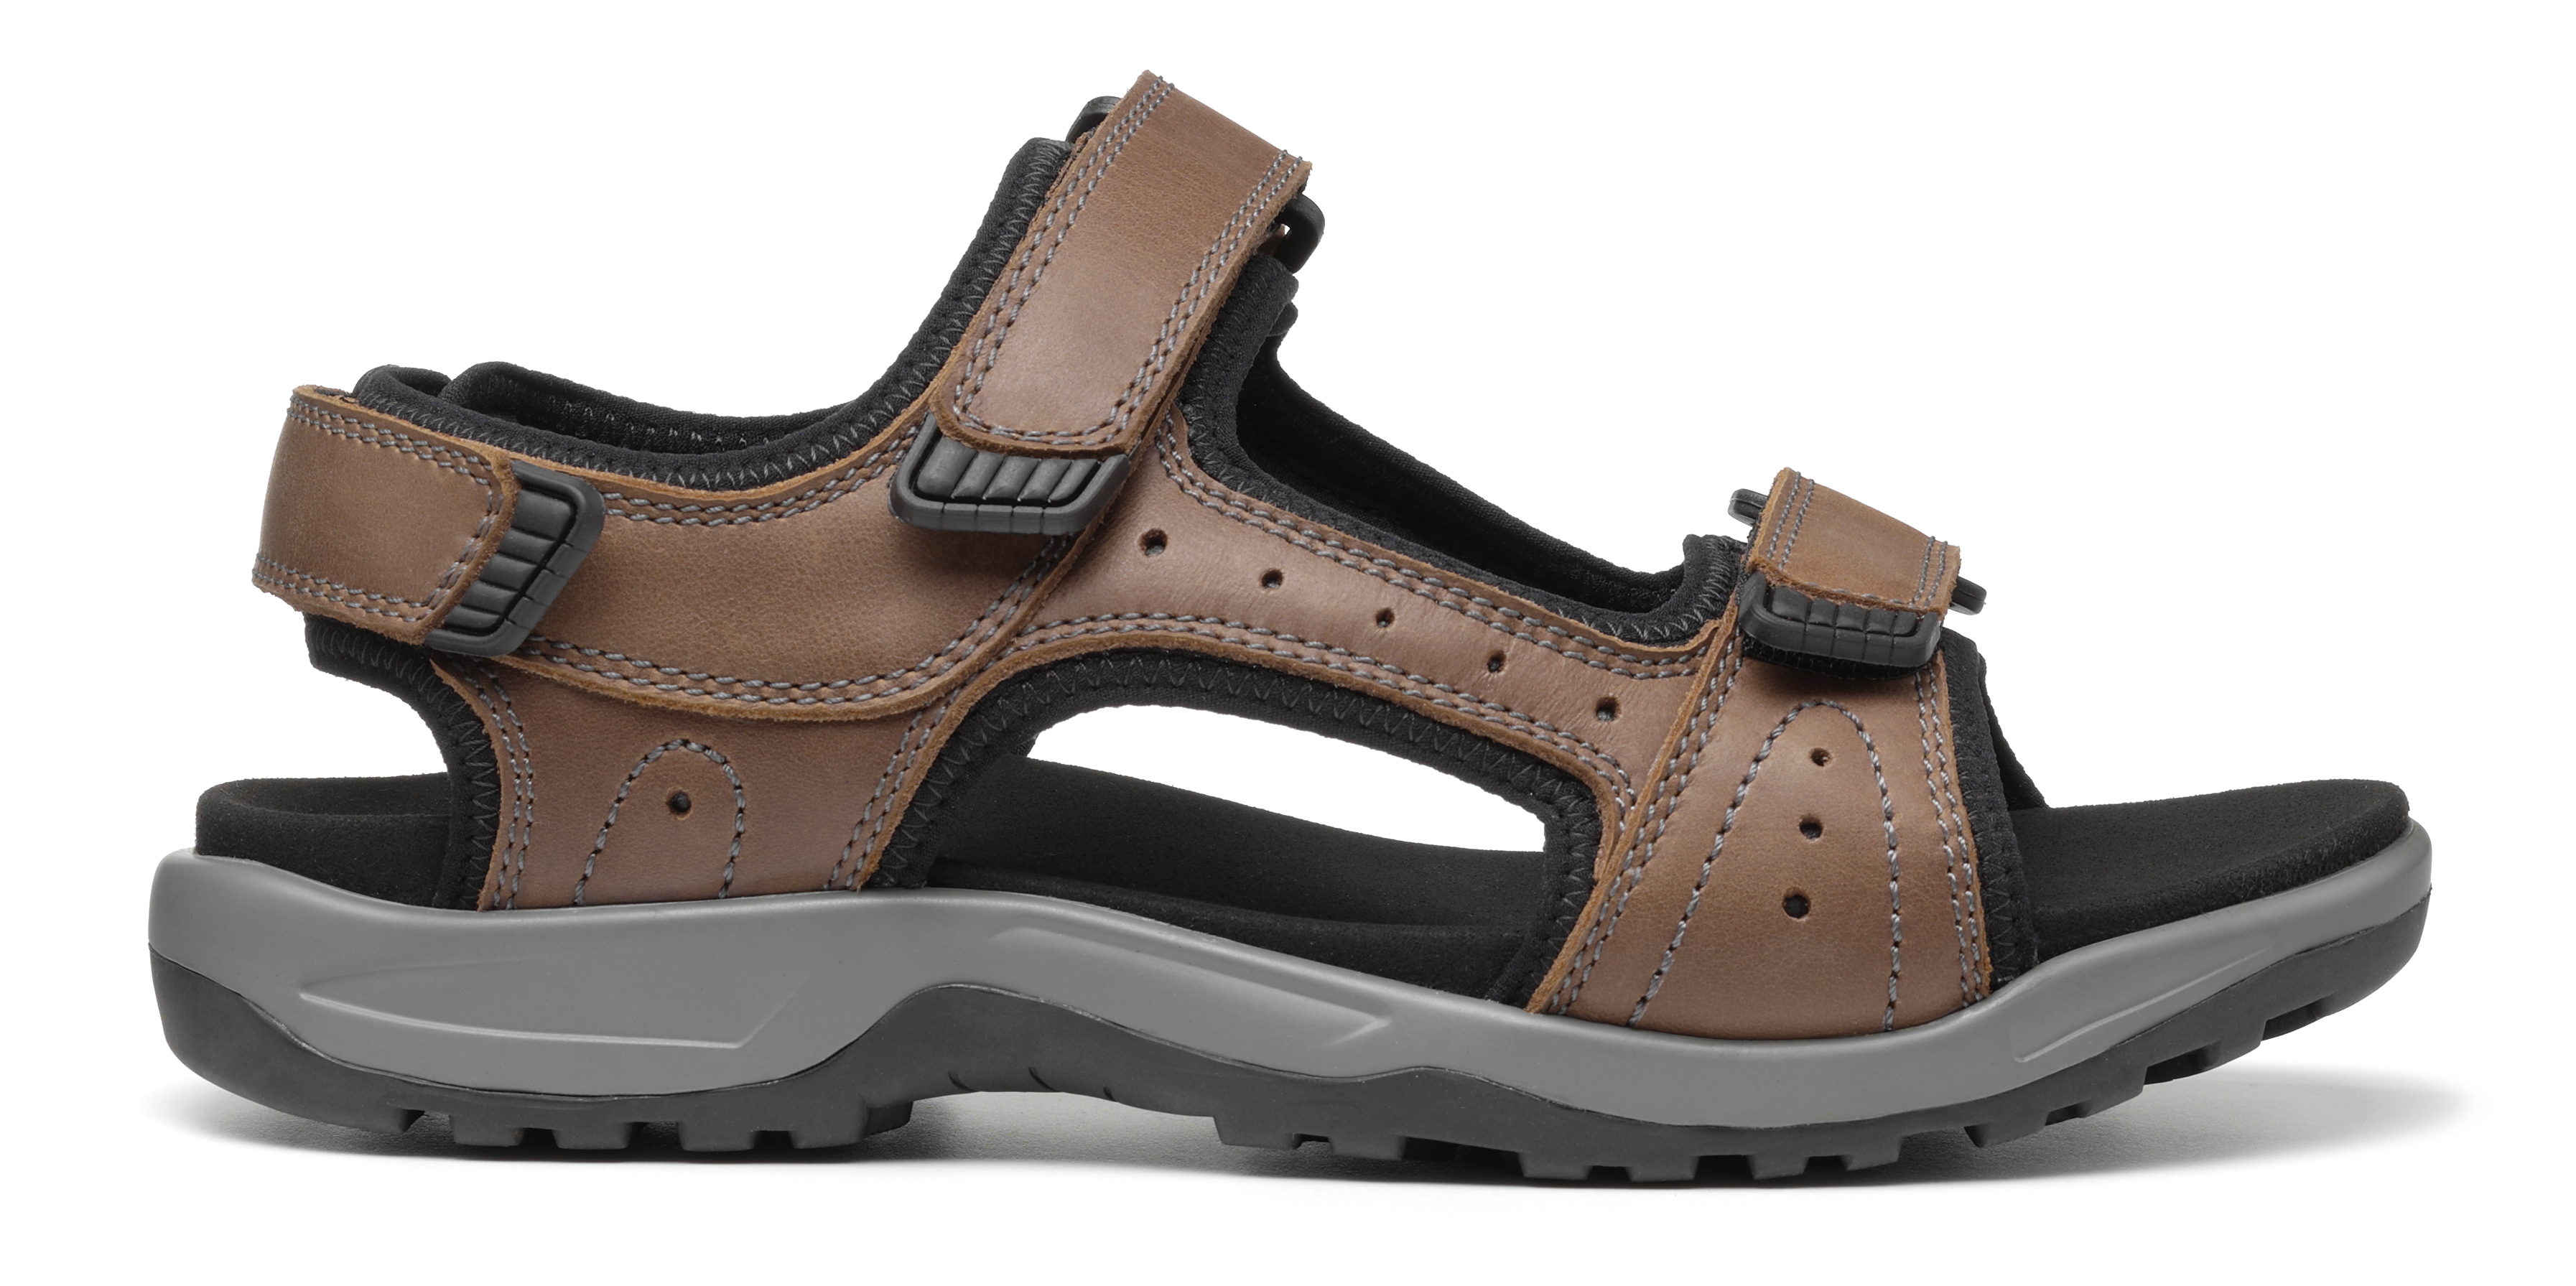 Hotter Men's Action Active Sandal Waxed